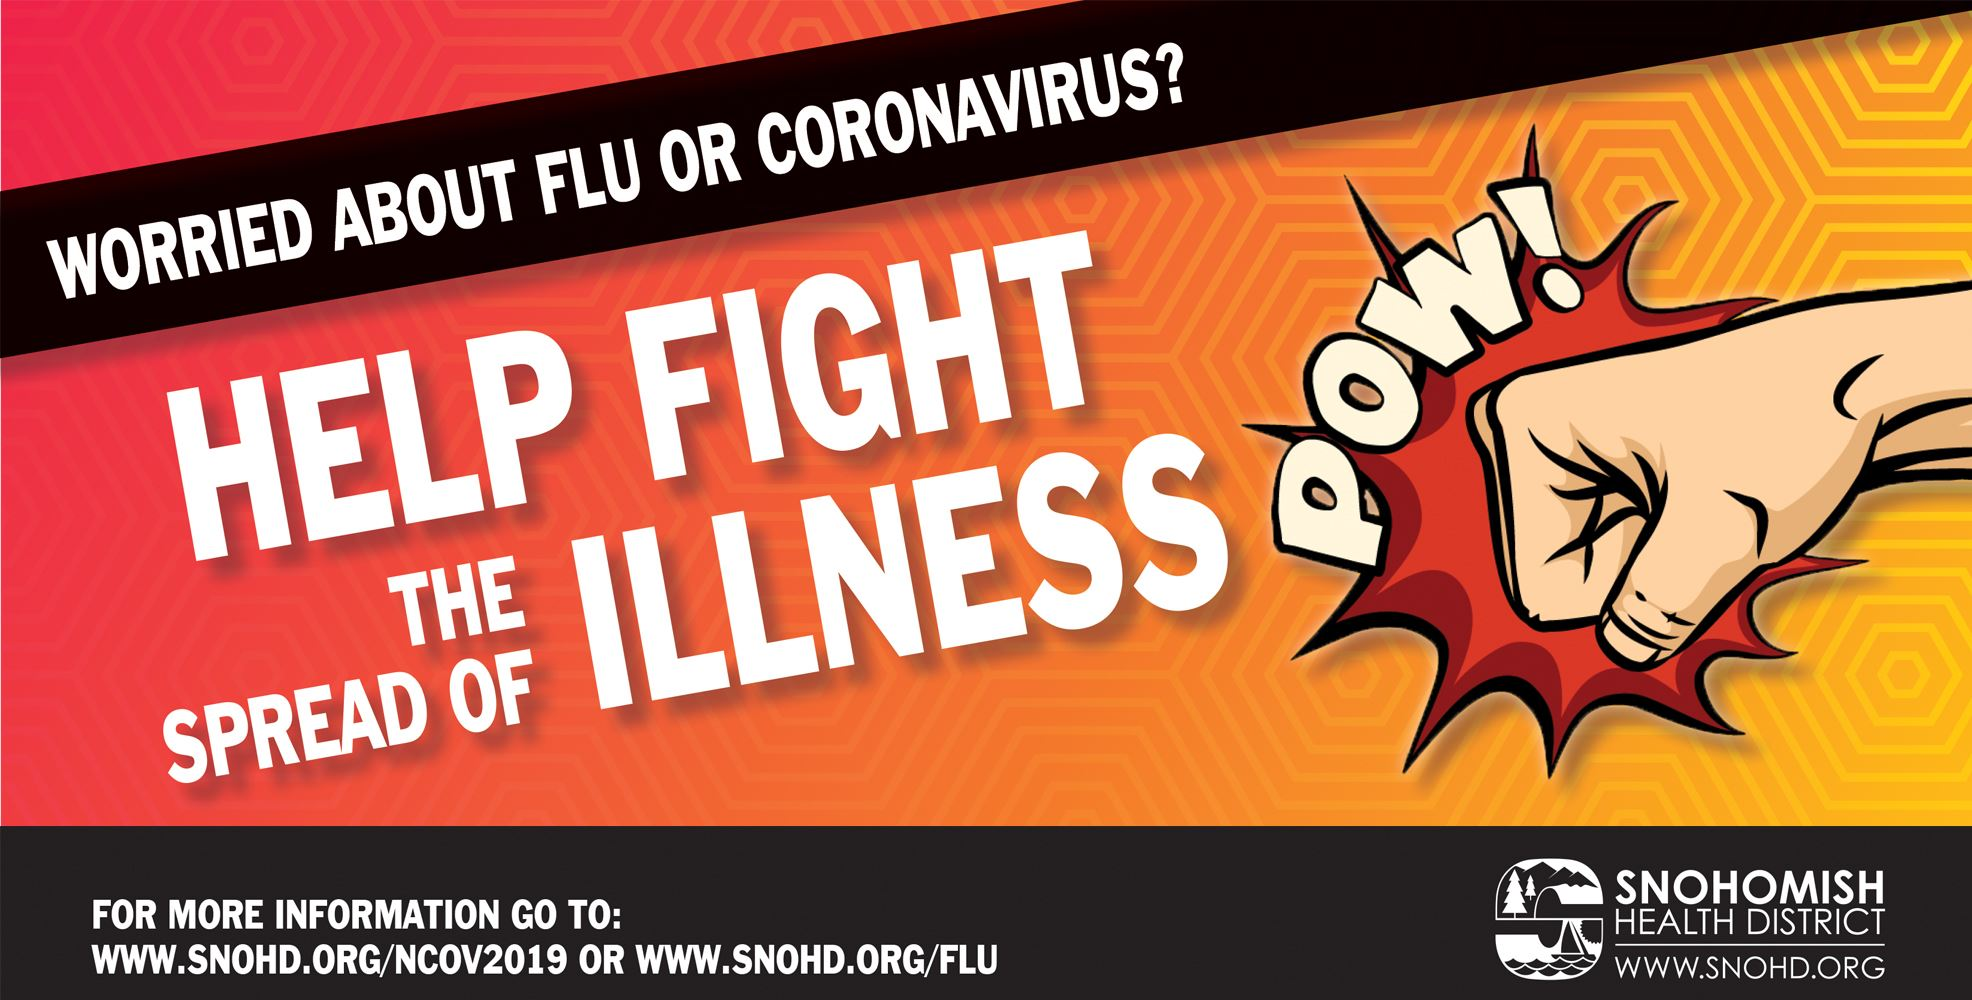 Worried about flu or coronavirus? Help fight the spread of illness. For more information go to: www.